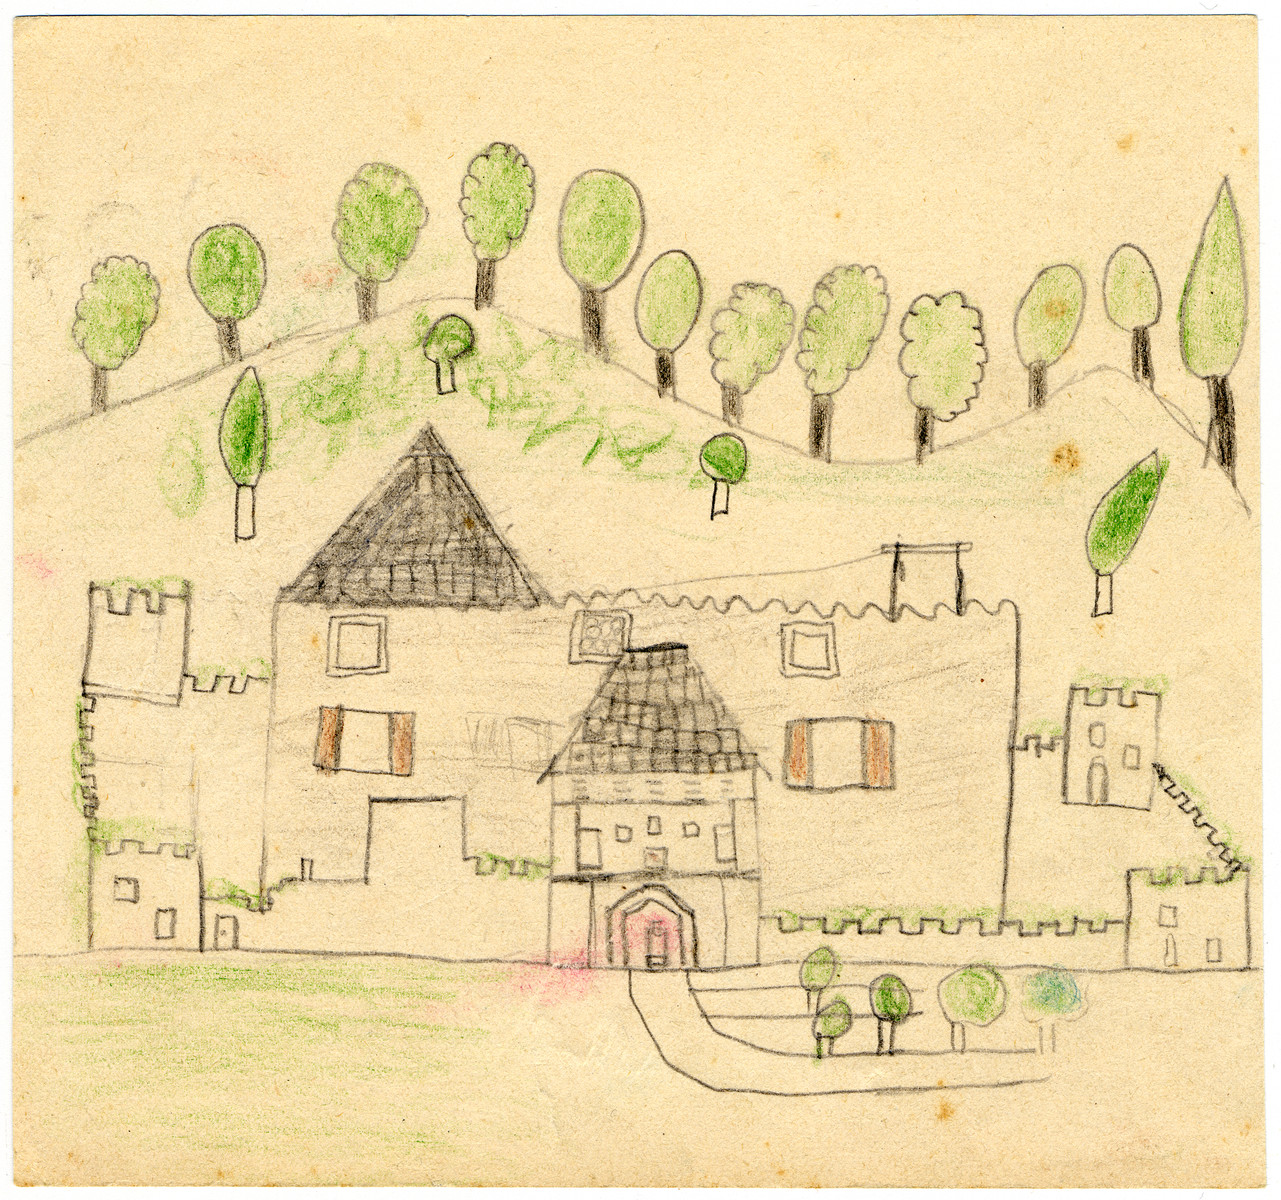 A child's drawing of Chateau de la Hille.